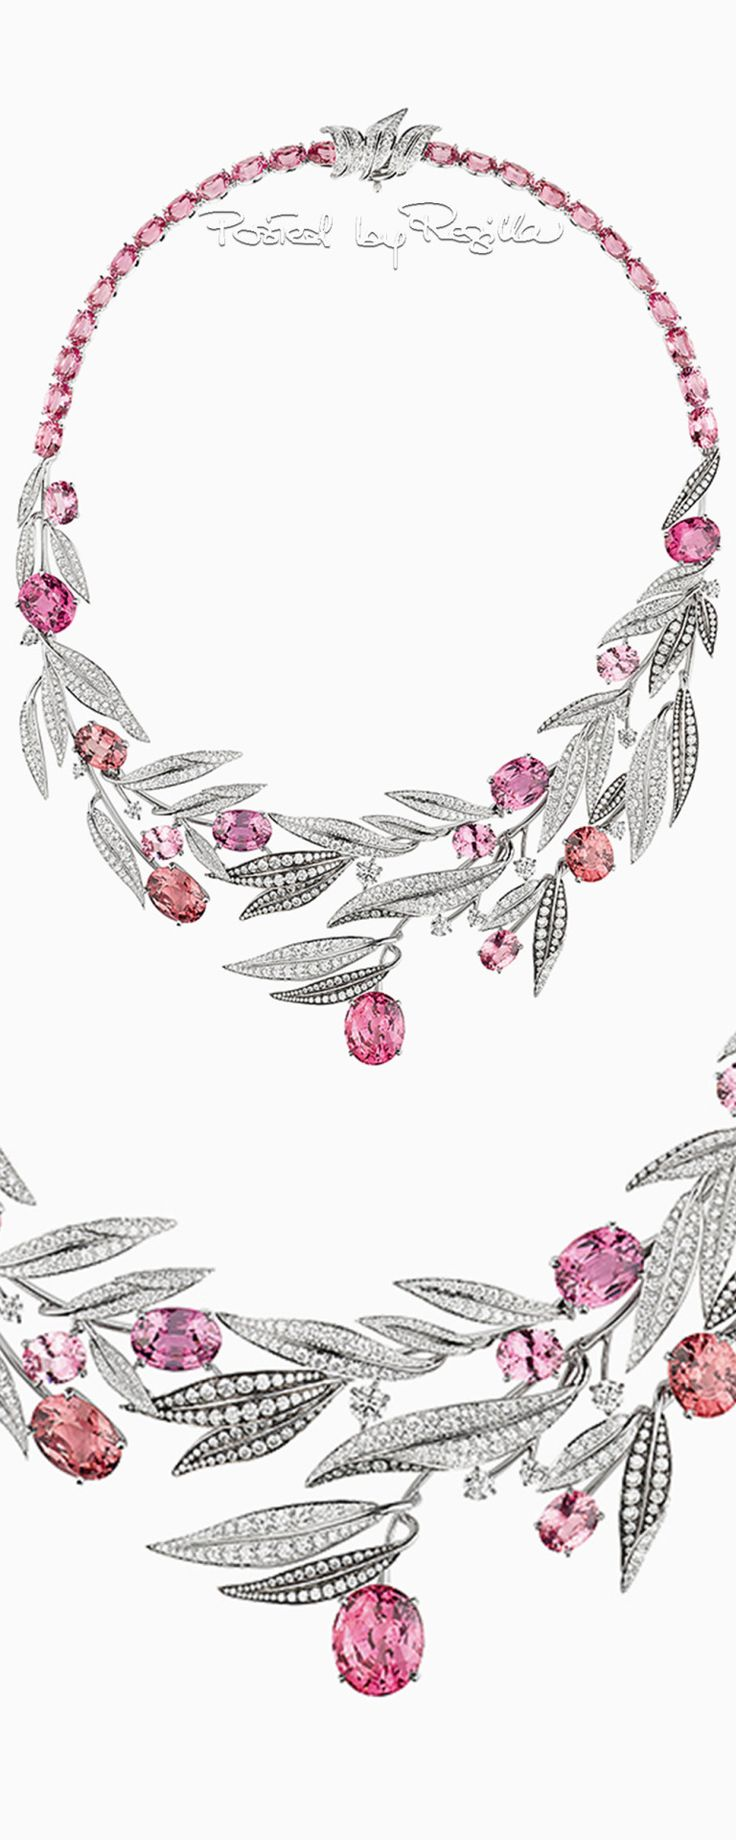 Check the way to make a special photo charms, and add it into your Pandora bracelets. Regilla ⚜ Chaum